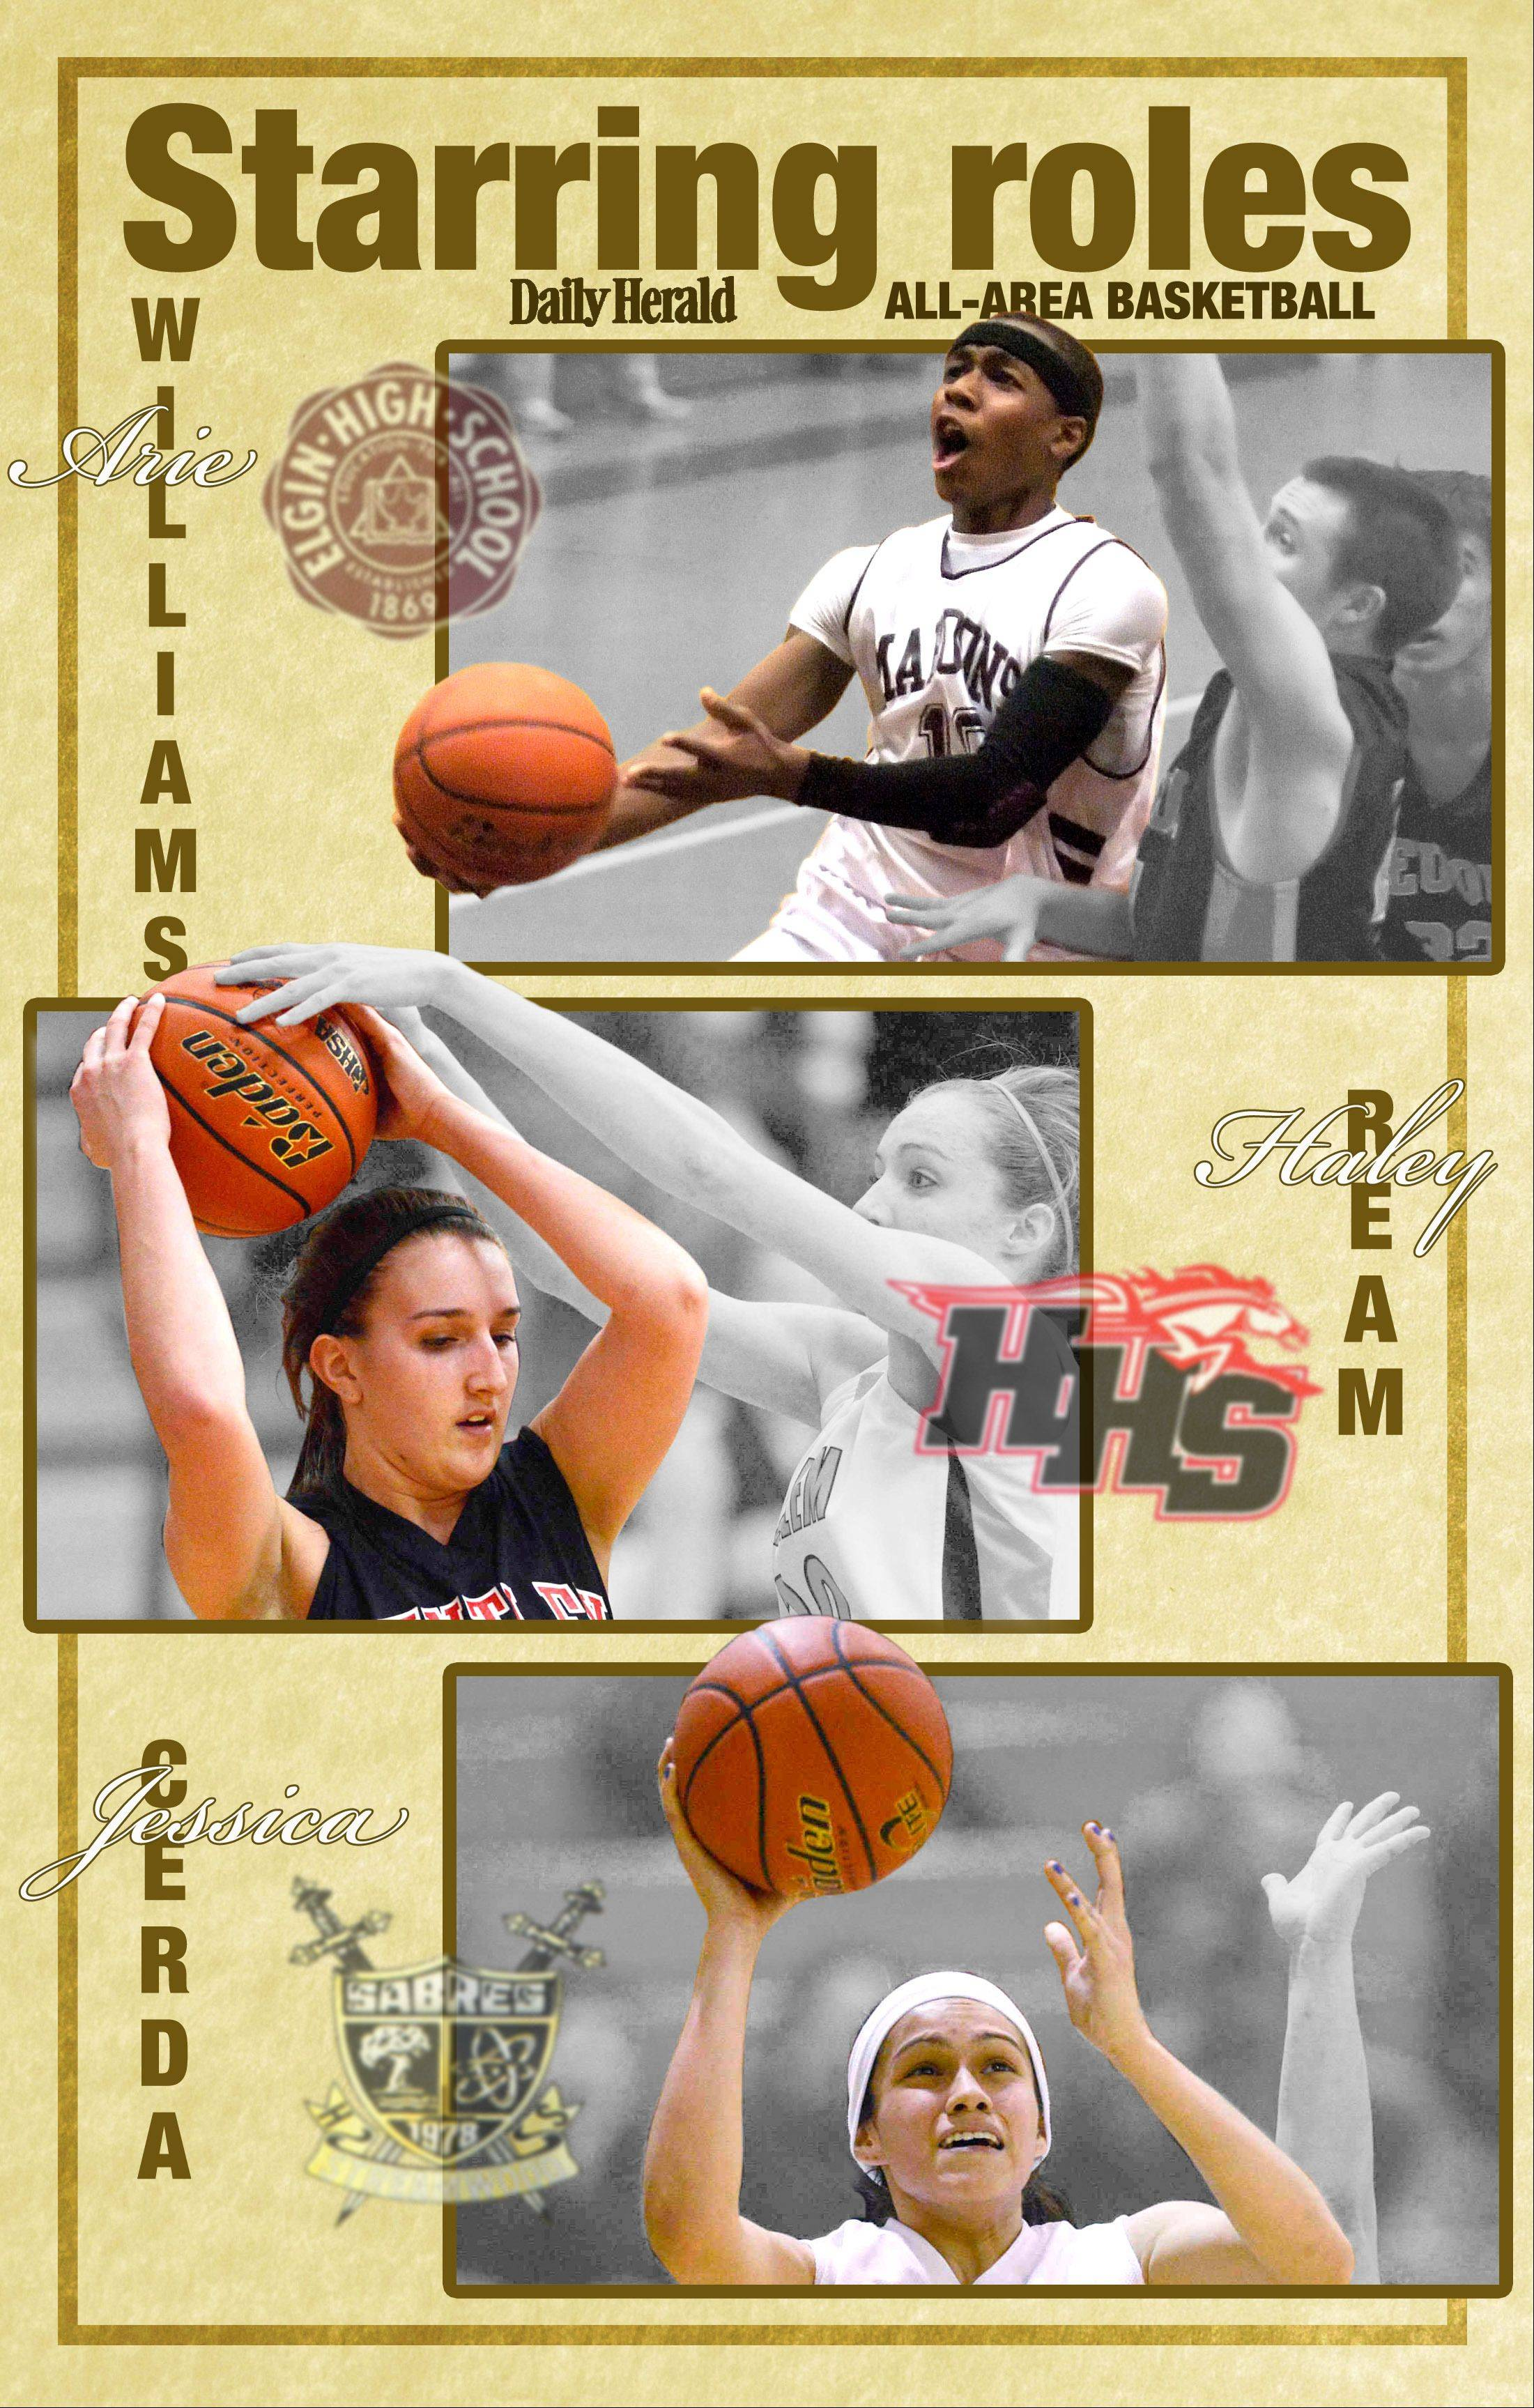 All-area Daily Herald basketball players in the Fox Valley are Arie Williams of Elgin, Haley Ream of Huntley, and Jessica Cerda of Streamwood.